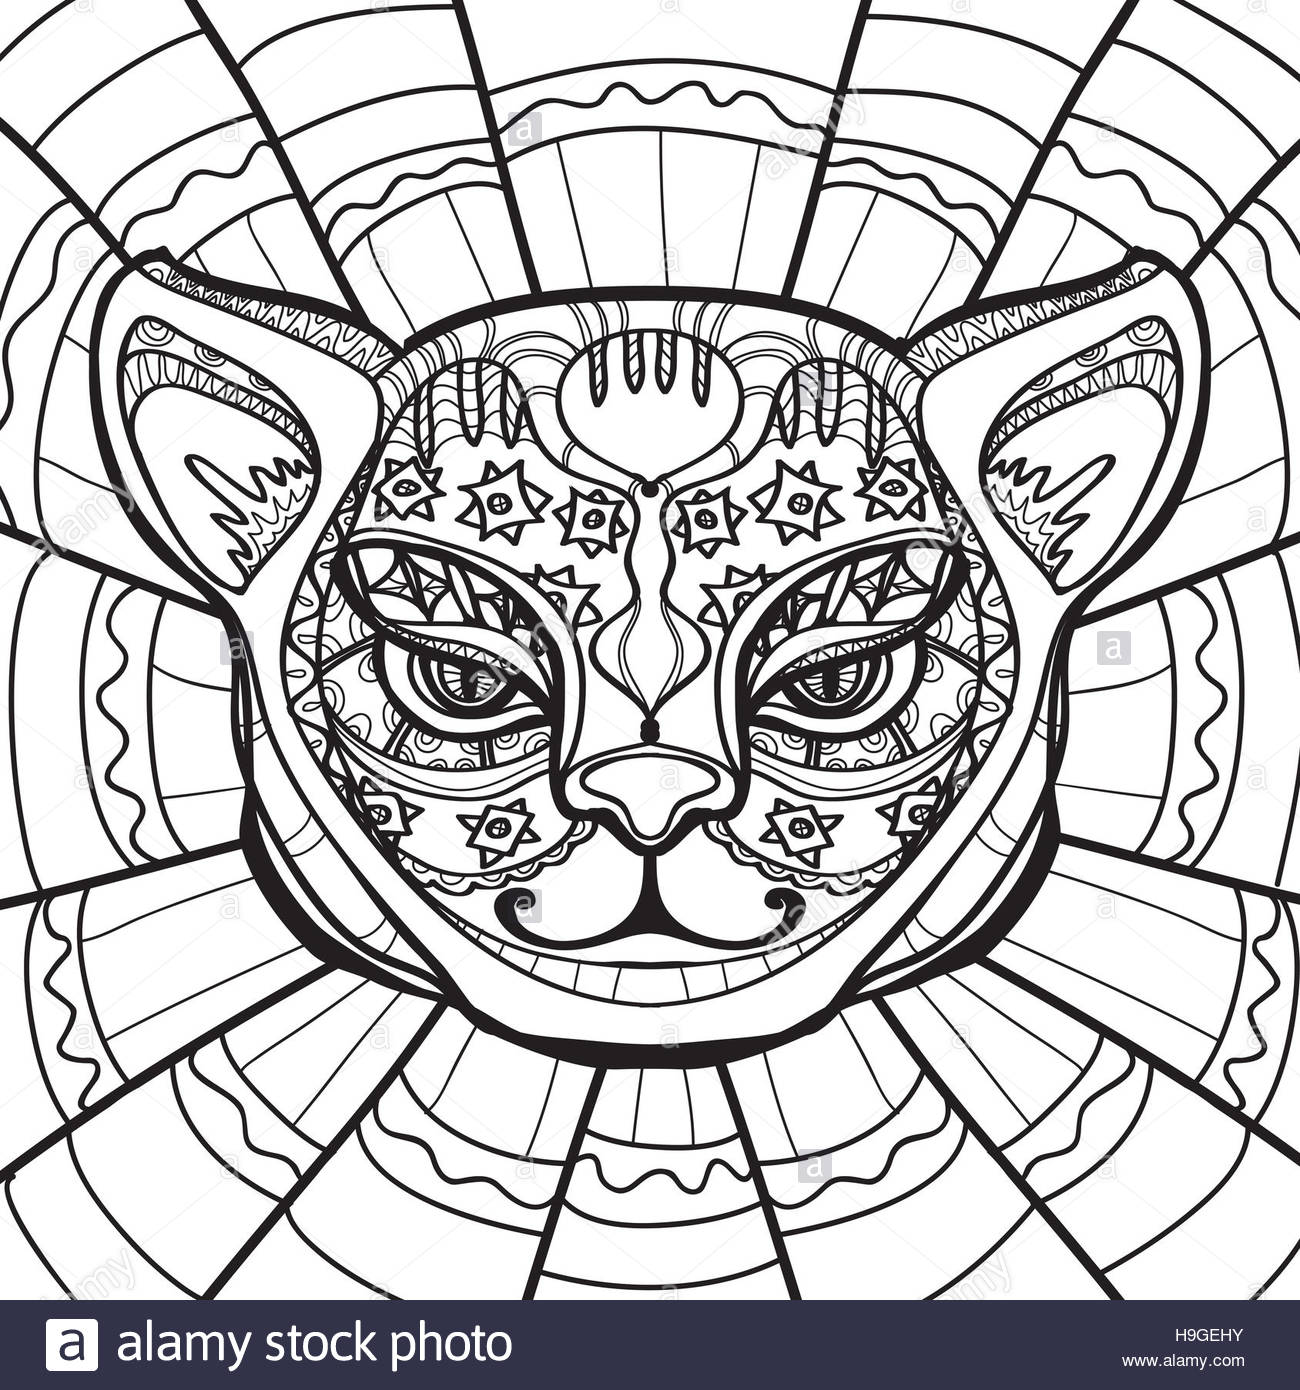 ethnic cat head drawn illustration in zentangle style coloring with from adult stock coloring pages Cat Head Coloring Page